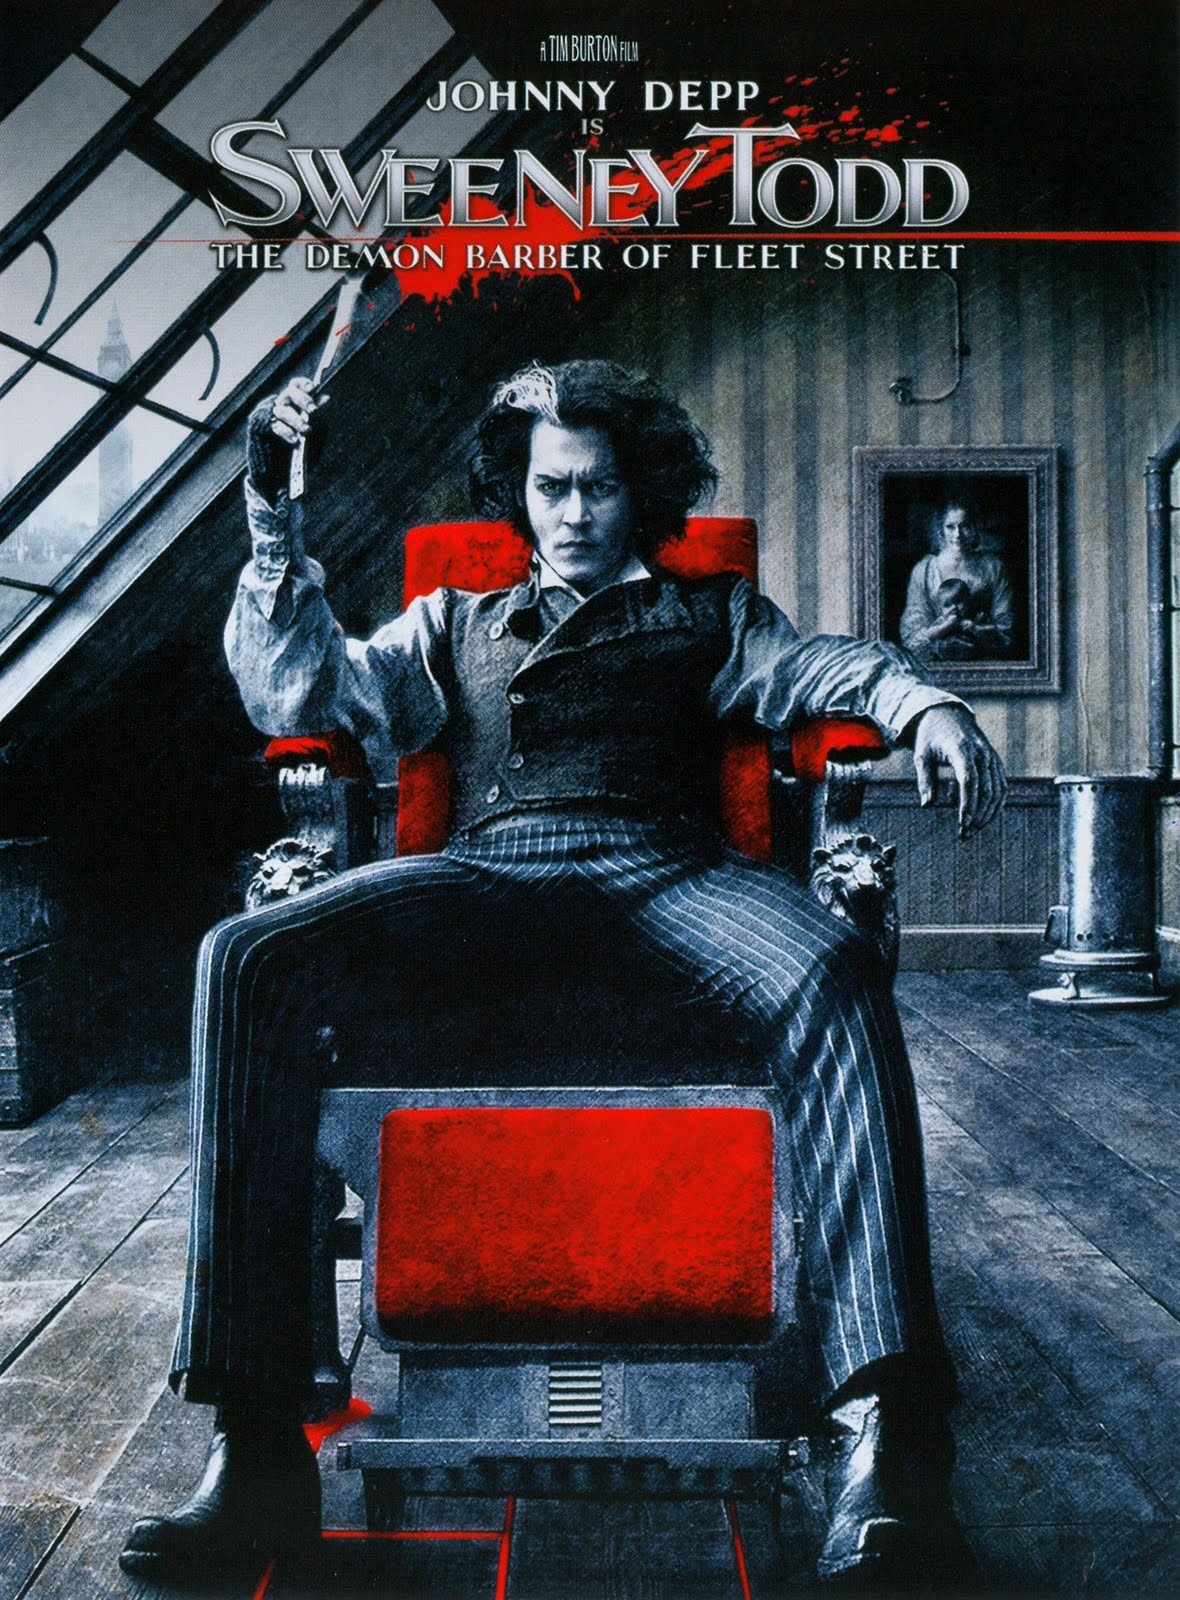 http://2.bp.blogspot.com/_W3bLkLDR-6o/TPU0nJaW1oI/AAAAAAAAJbk/5ePCE2DXvDI/s1600/Sweeney_Todd_The_Demon_Barber_Of_Fleet_Street_2-disc_Special_Edition.jpg